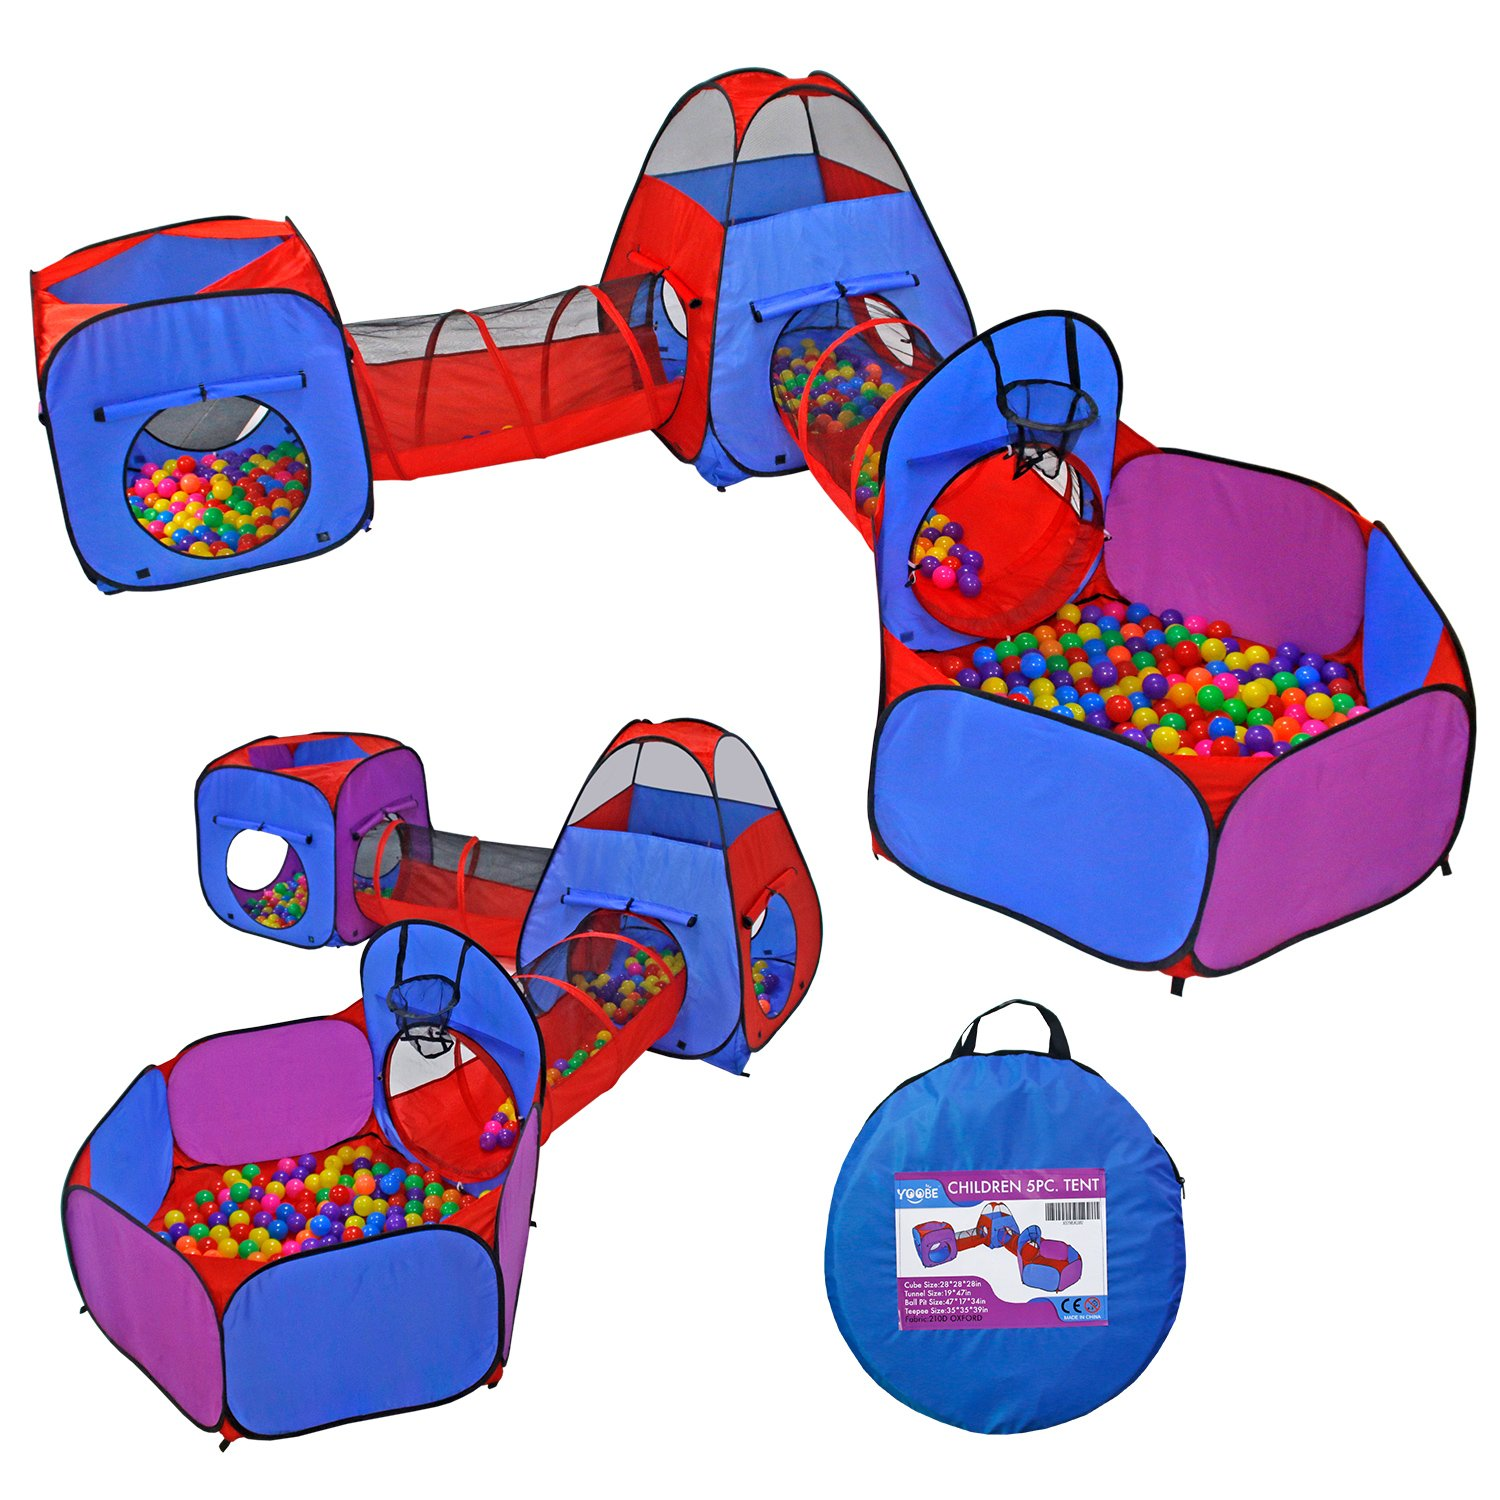 Yoobe 5pc Pop up Play Tent and Tunnels Toy Indoor & Outdoor Child Tent with Ball Pit Playhouse